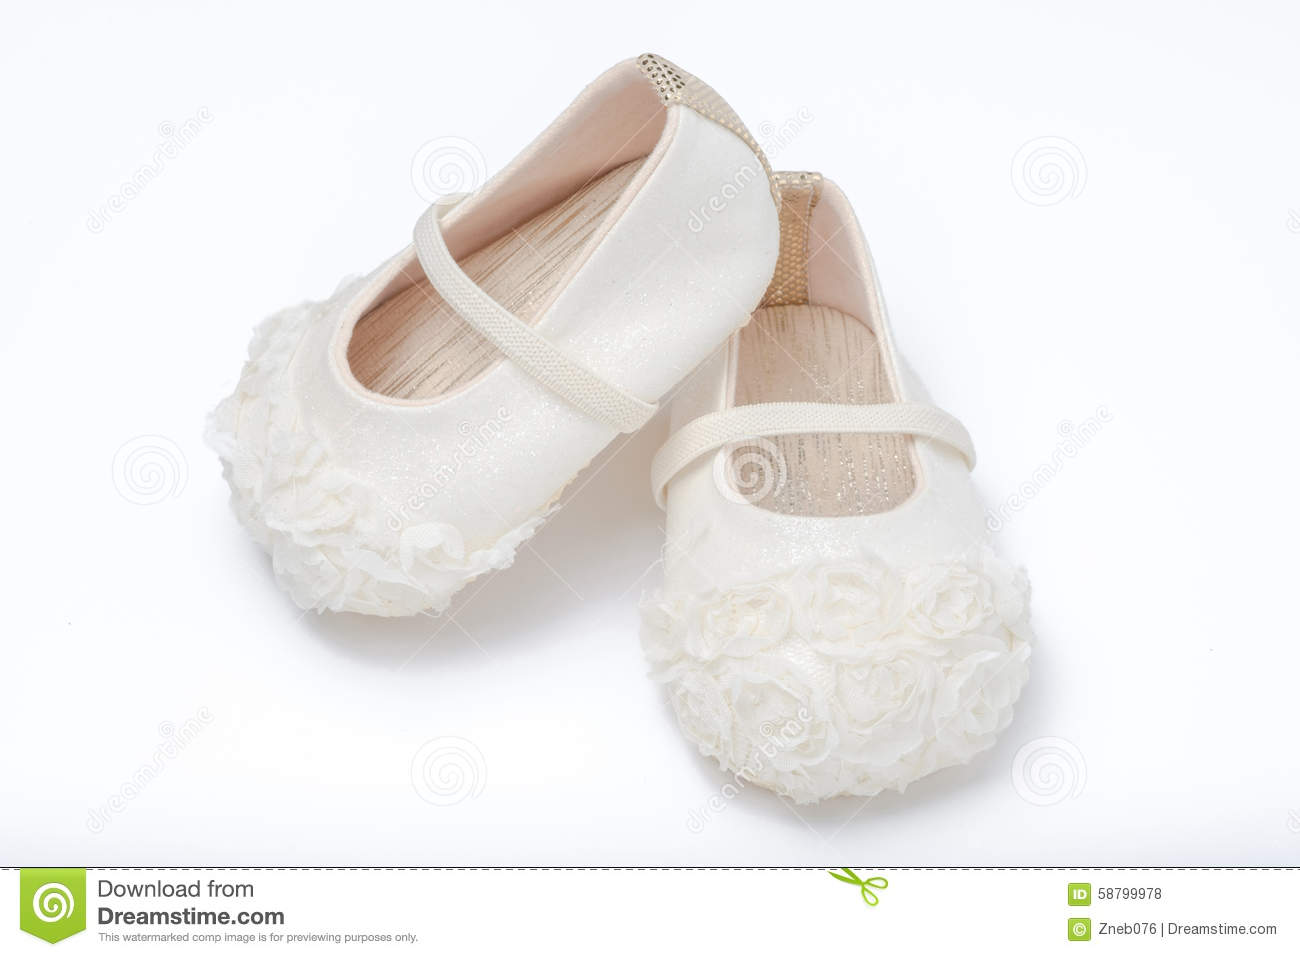 Cute Baby Shoes For Girl Kids White Background Stock